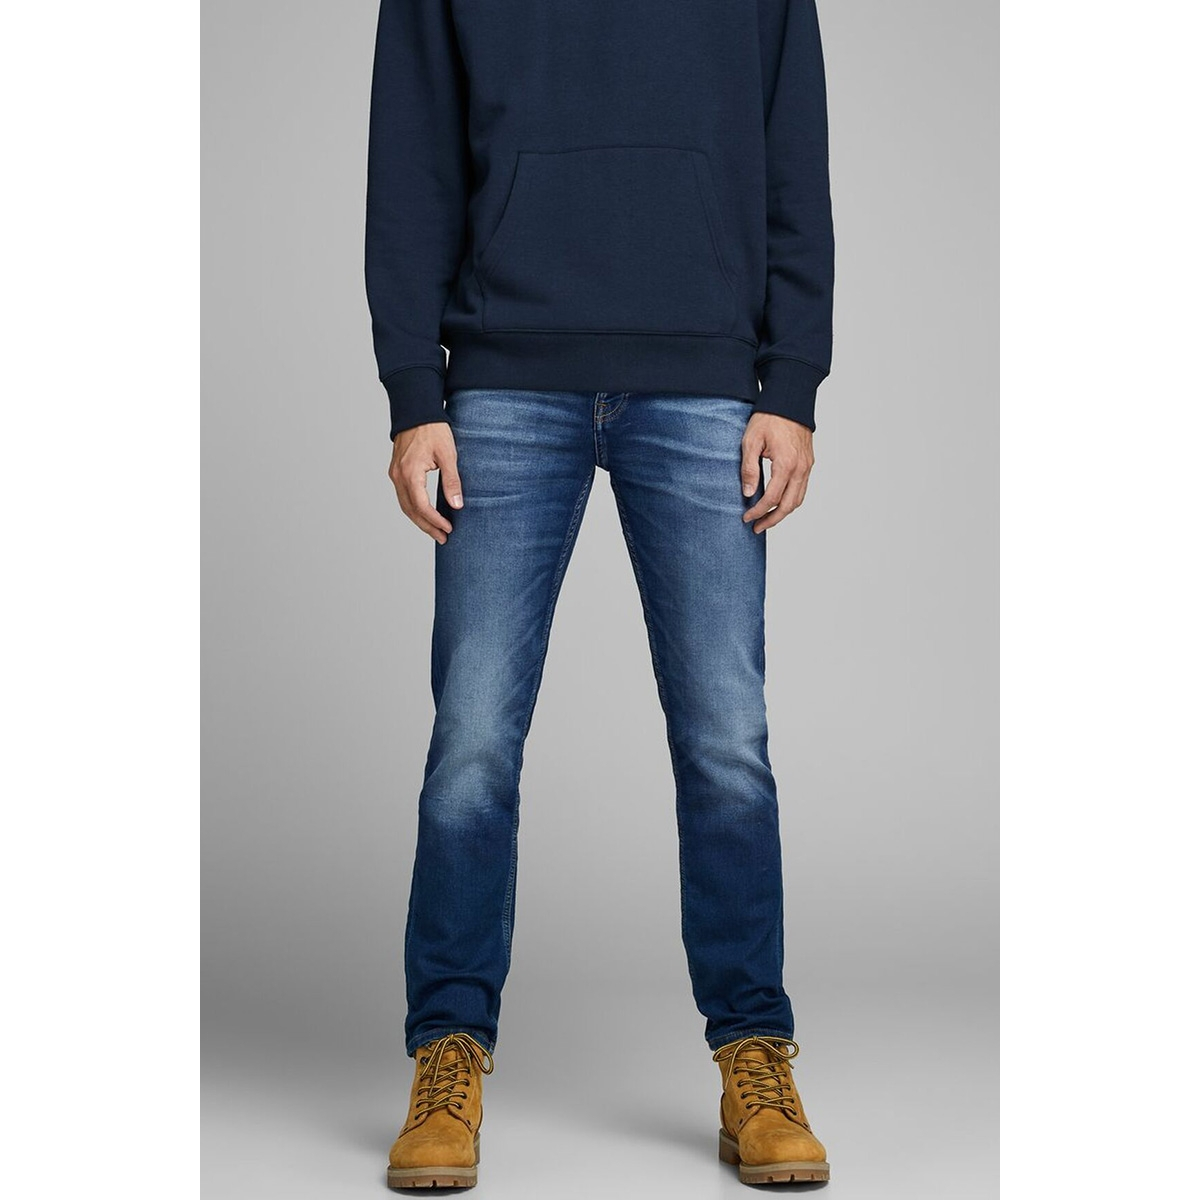 jjitim jjleon ge 227 i.k. noos 12159129 jack & jones jeans blue denim